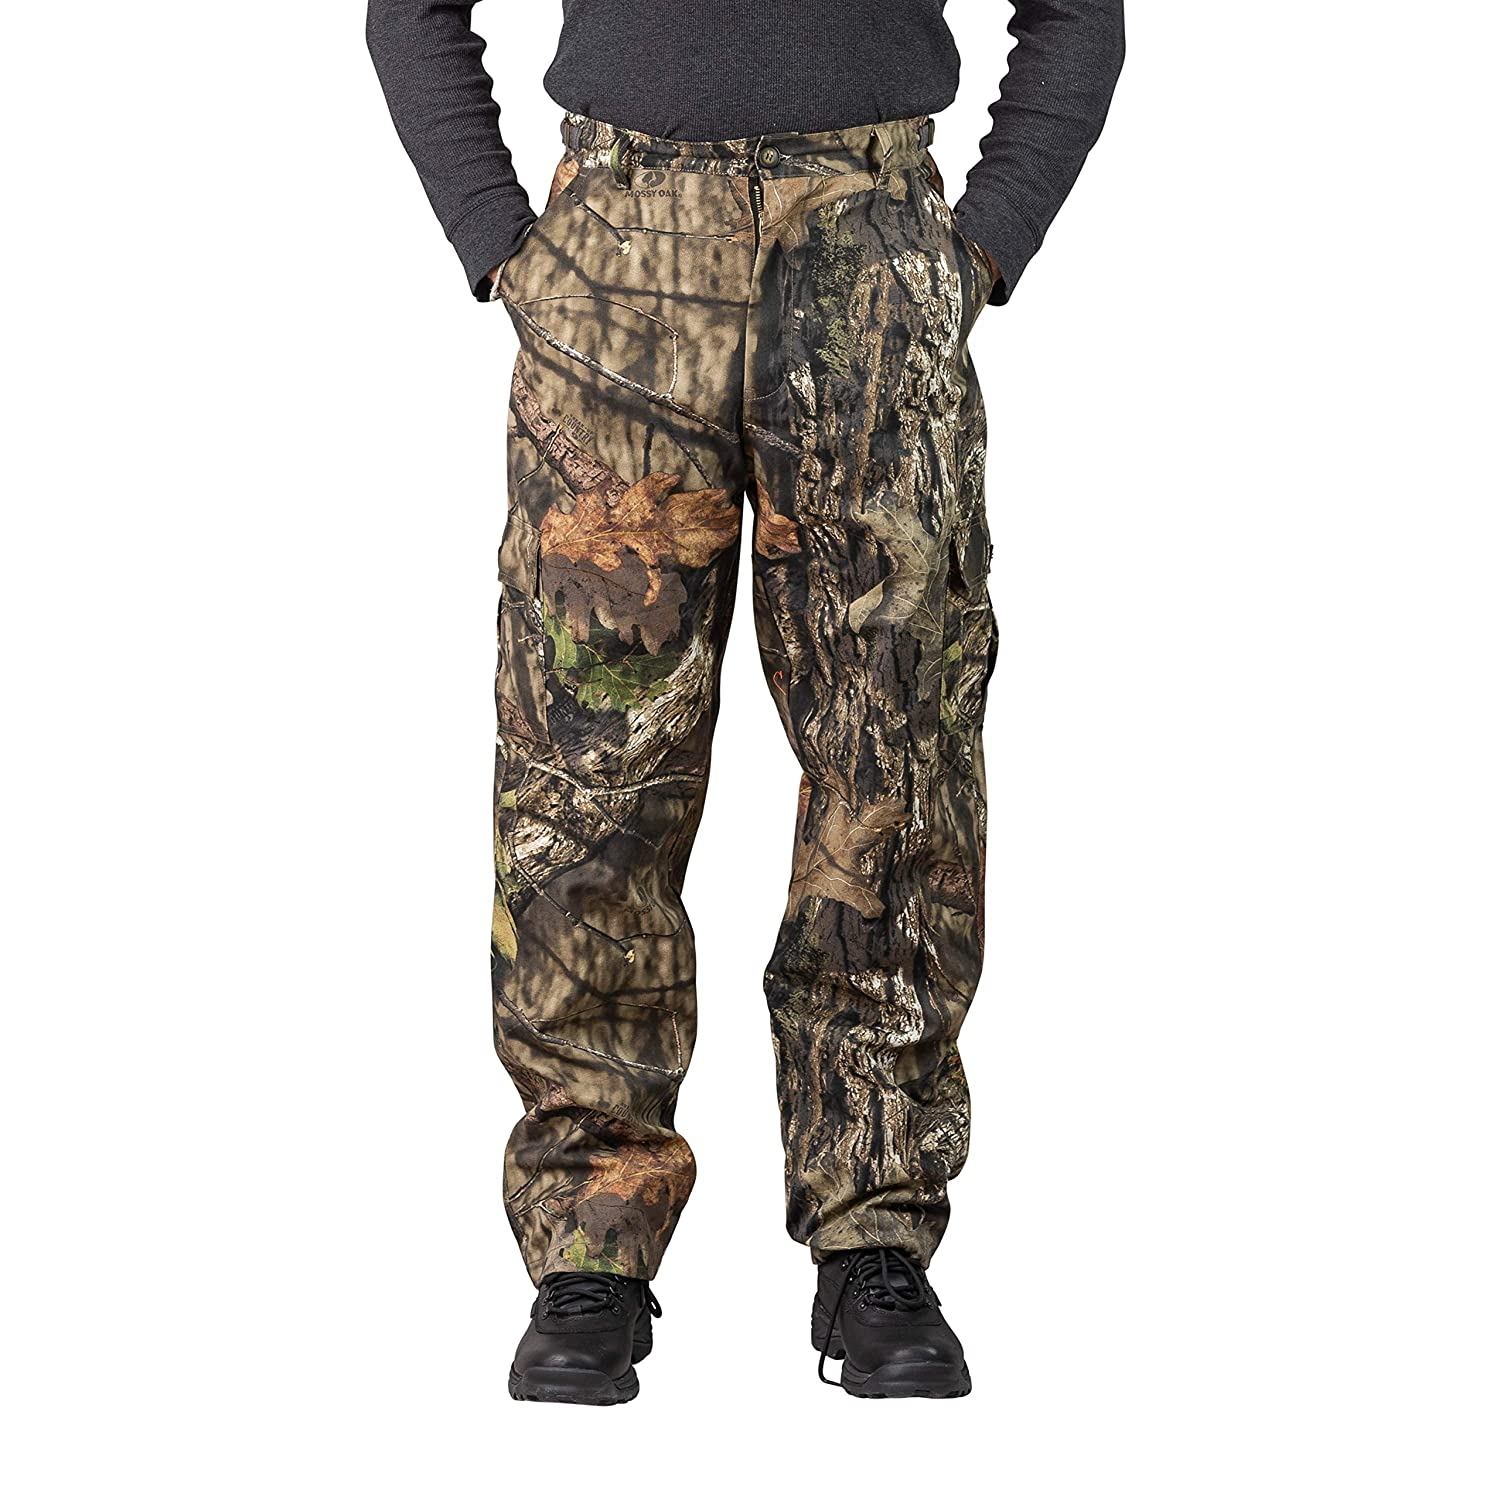 abe2b9d768e23 TrailCrest Men's Camo Hunting Cargo Pants | 6 Pockets | Mossy Oak Break-Up  Country